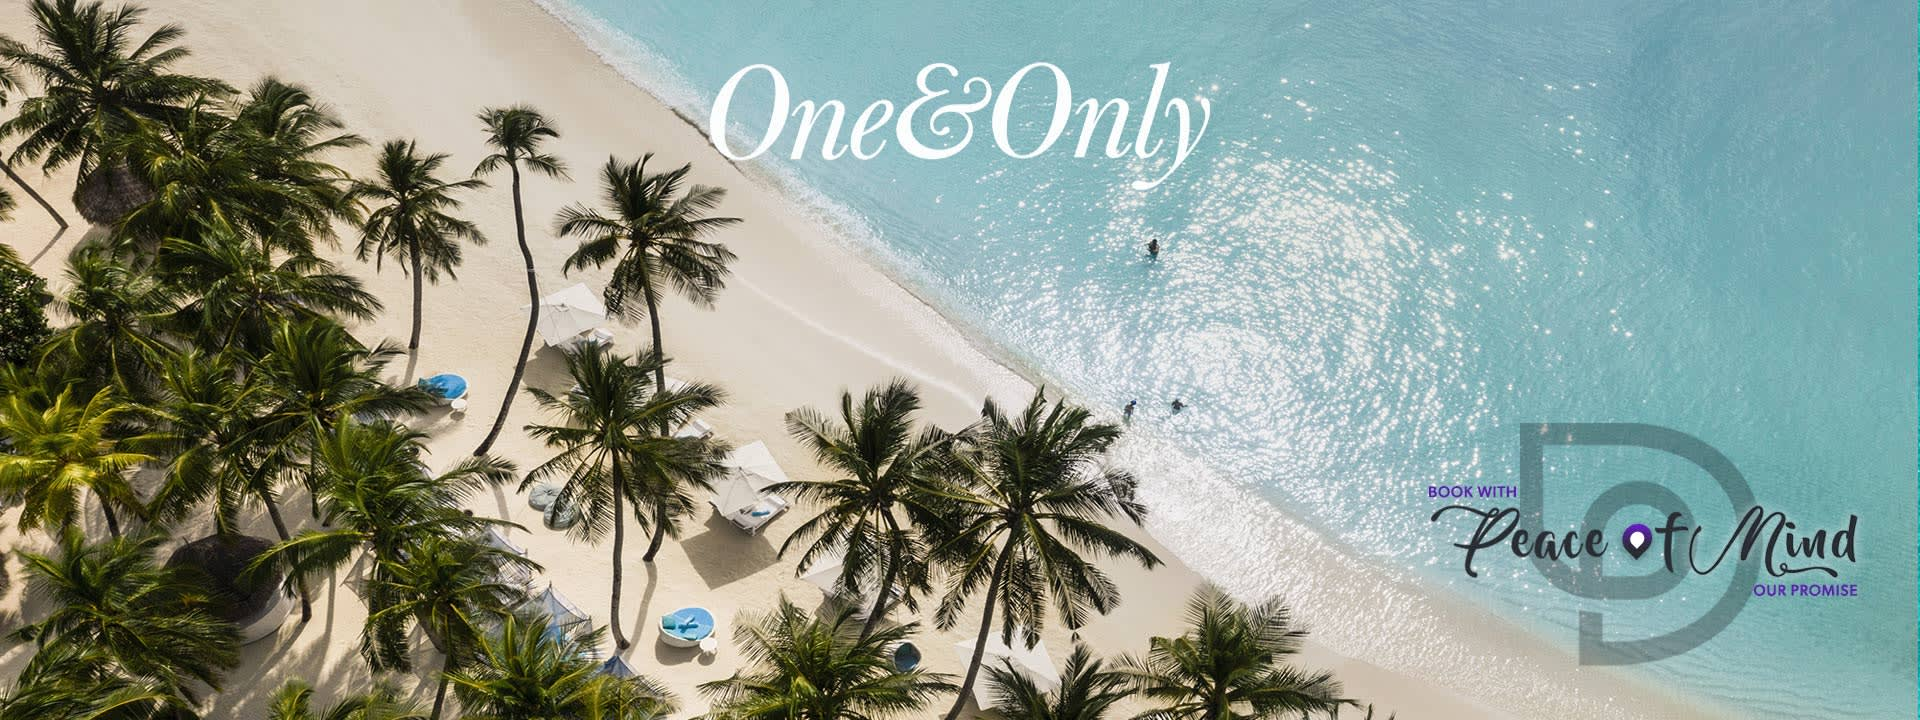 One&Only Resorts - Save Up To 50%!